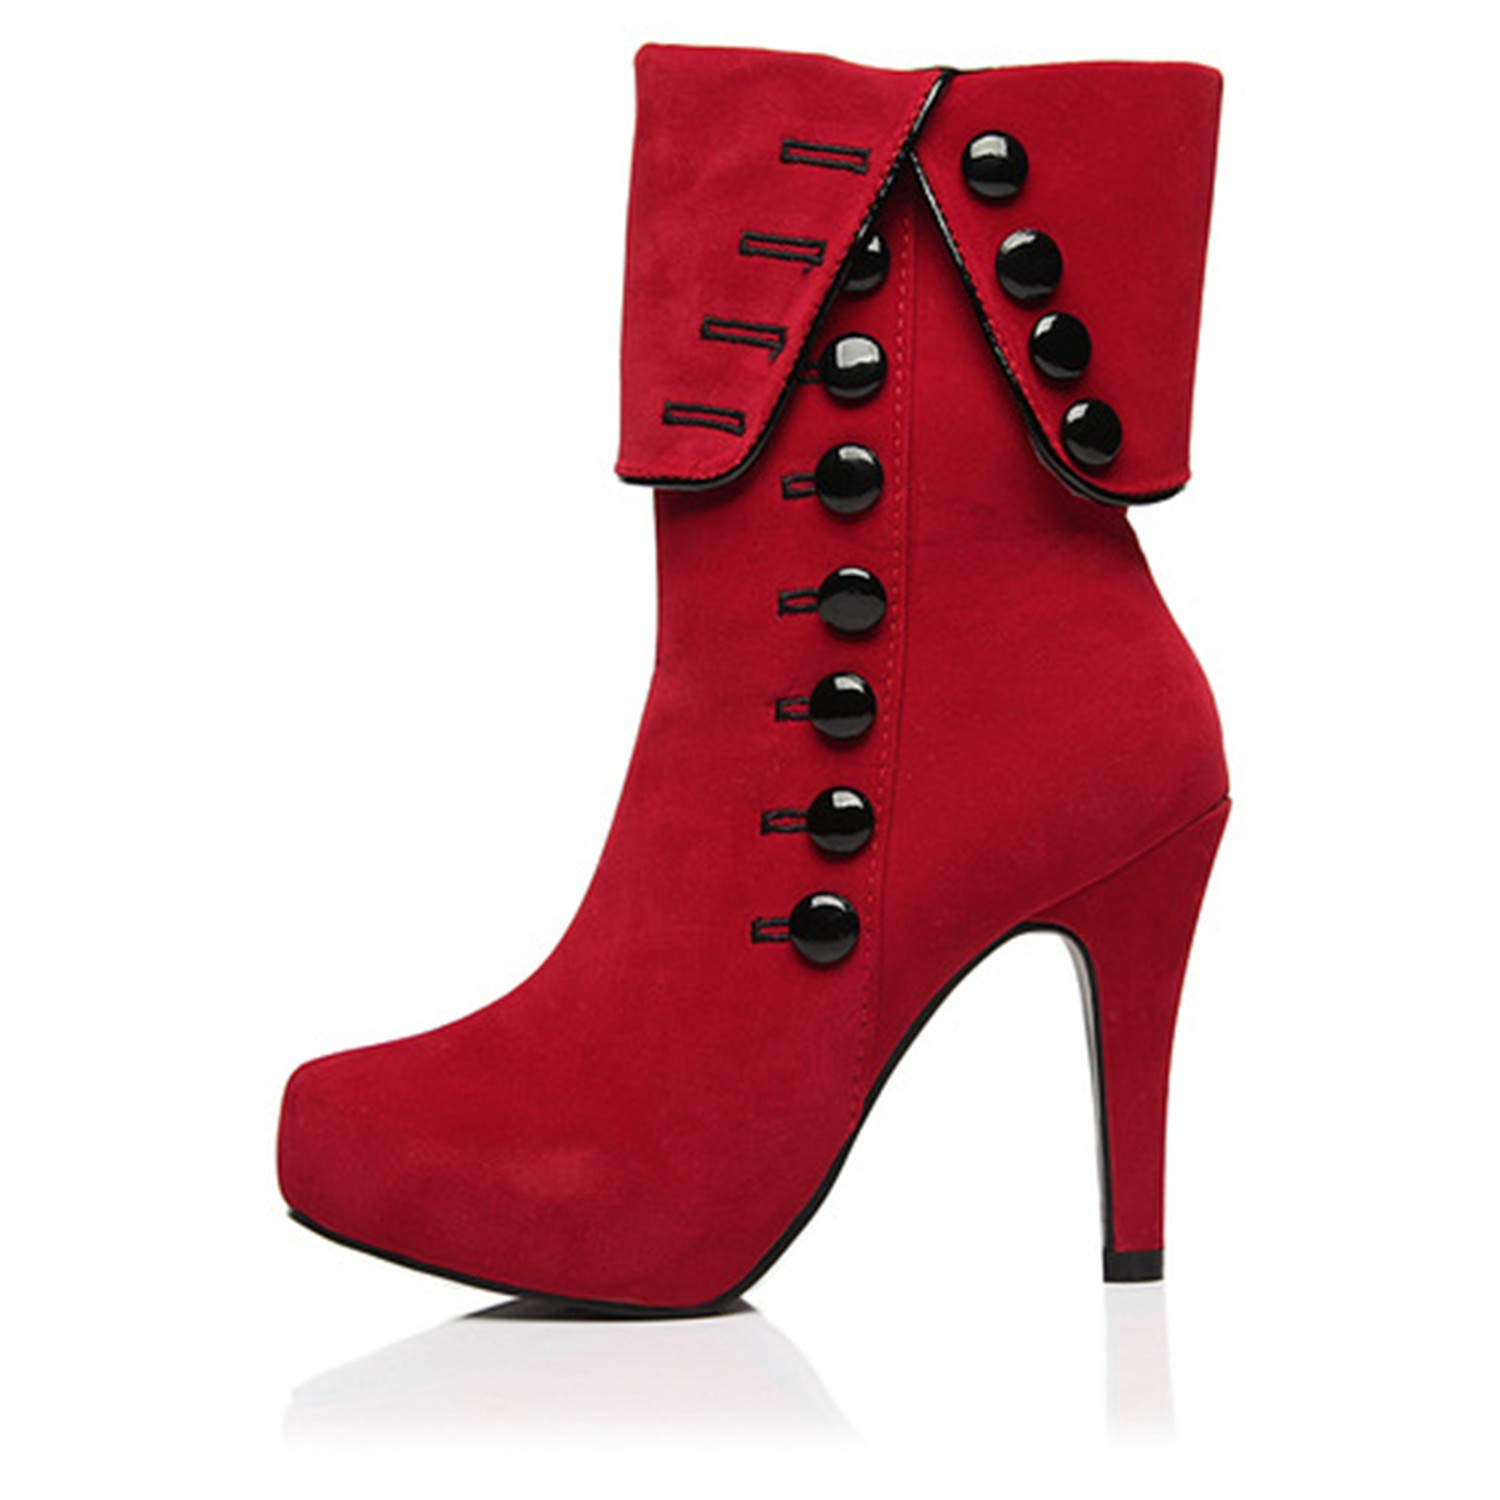 Women's Red Victorian Black Button High-Heel Cuff Cheap Pirate Ankle Boot - DeluxeAdultCostumes.com